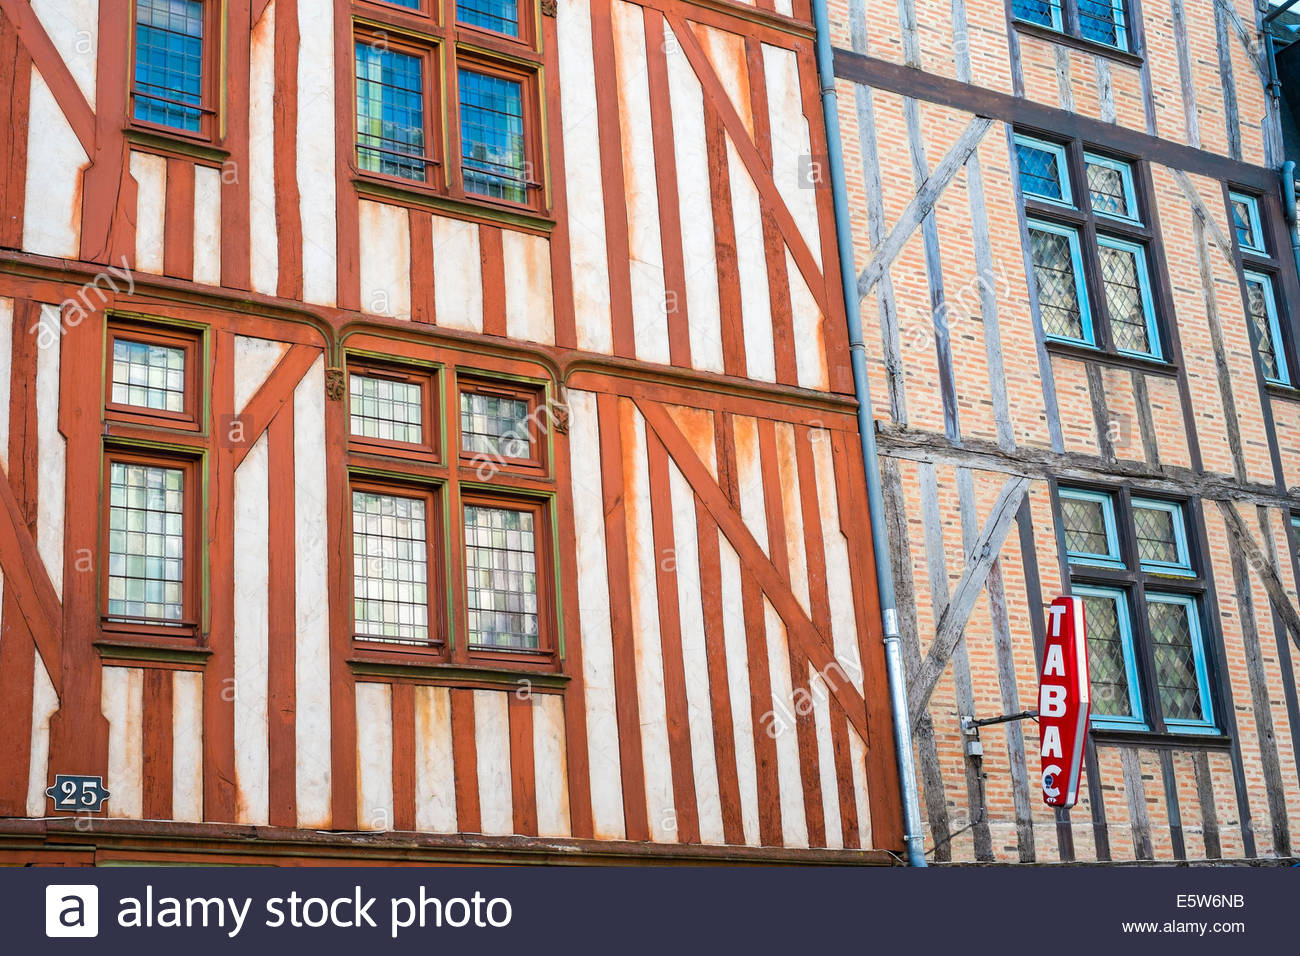 Old wooden half-timbered houses, Tours, Indre-et-Loire, Centre, France - Stock Image